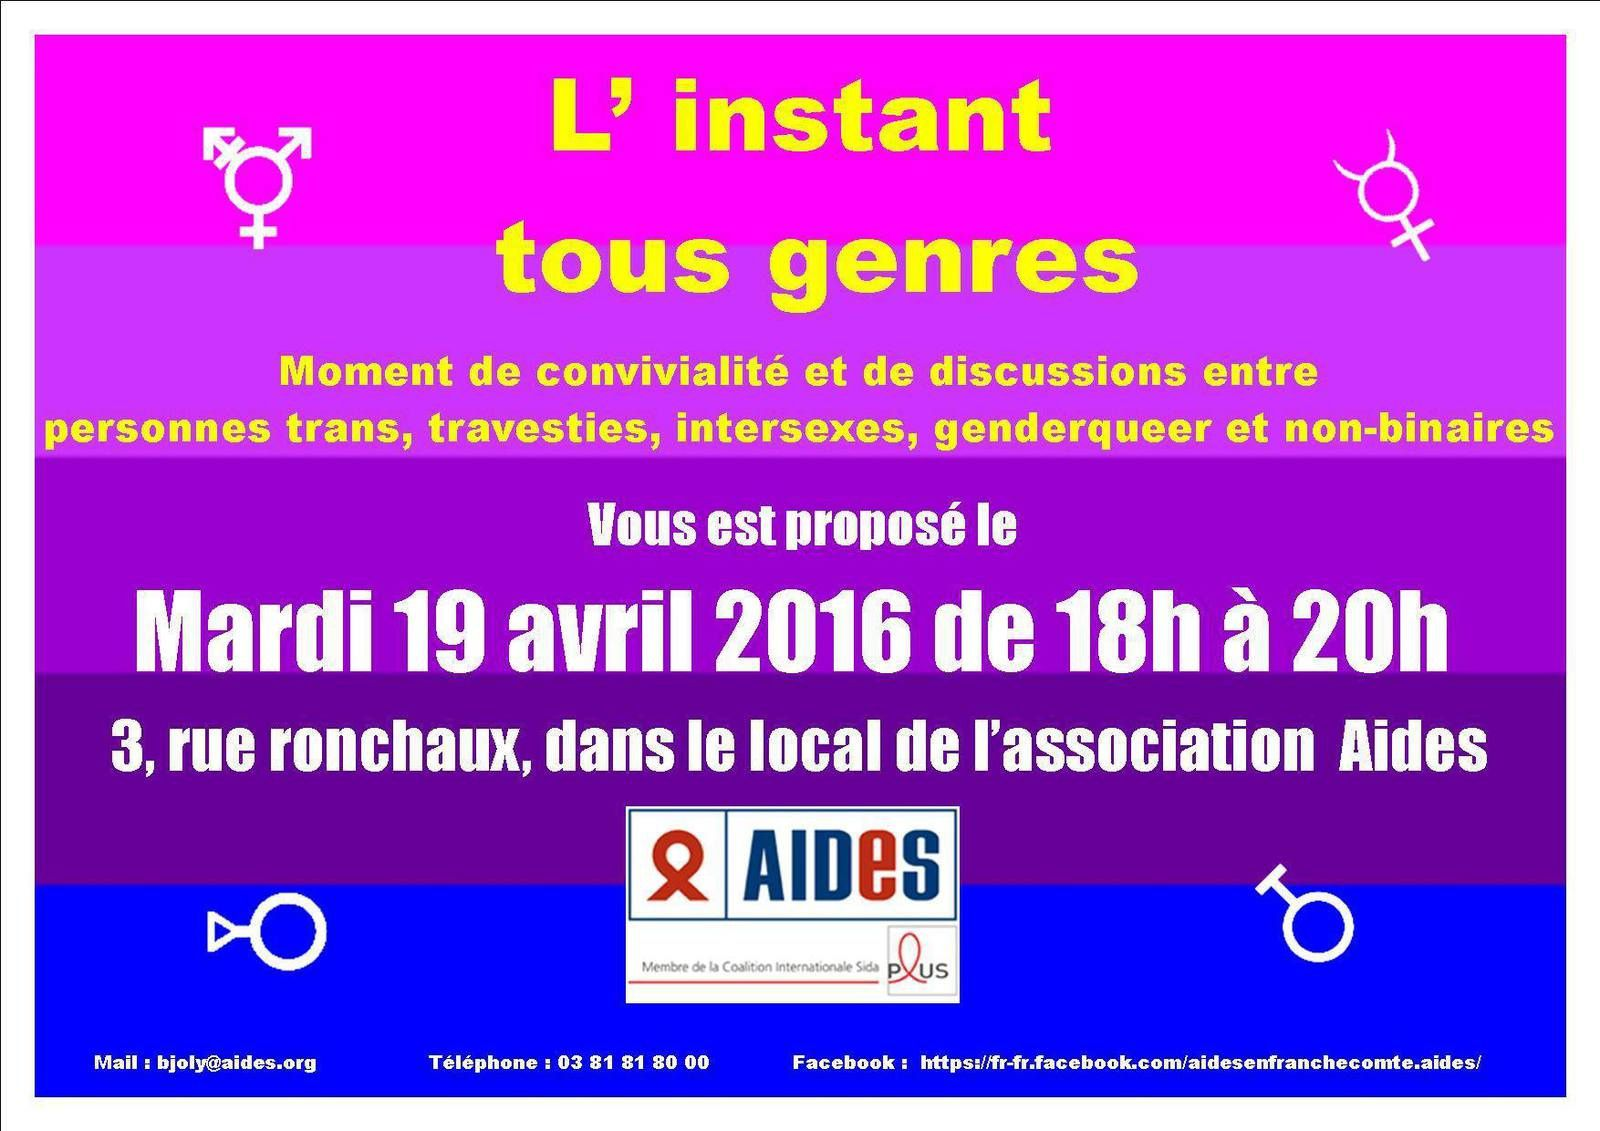 Instant tous genres 19 avril 2016